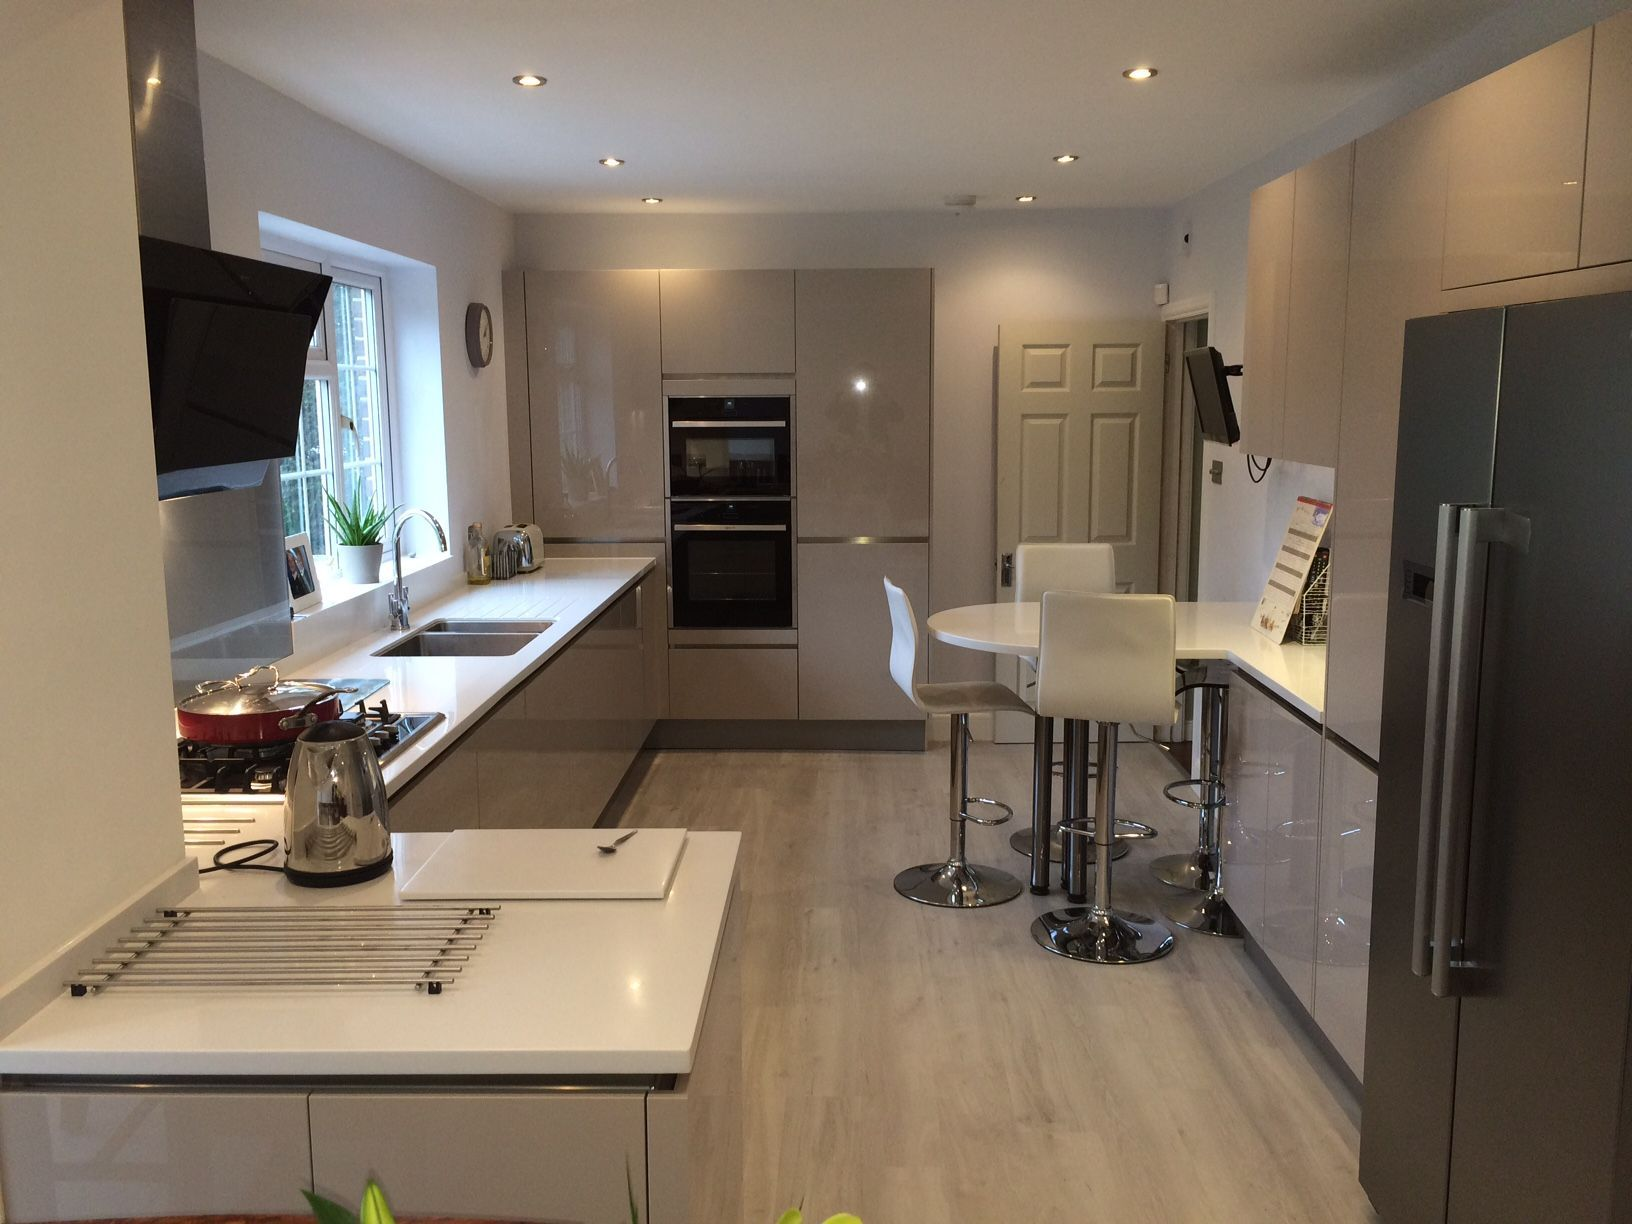 This Galley Kitchen Incorporates A Breakfast Bar Area To Create A Fantastic Social Area With High Kitchen Design Decor Breakfast Bar Kitchen Cashmere Kitchen